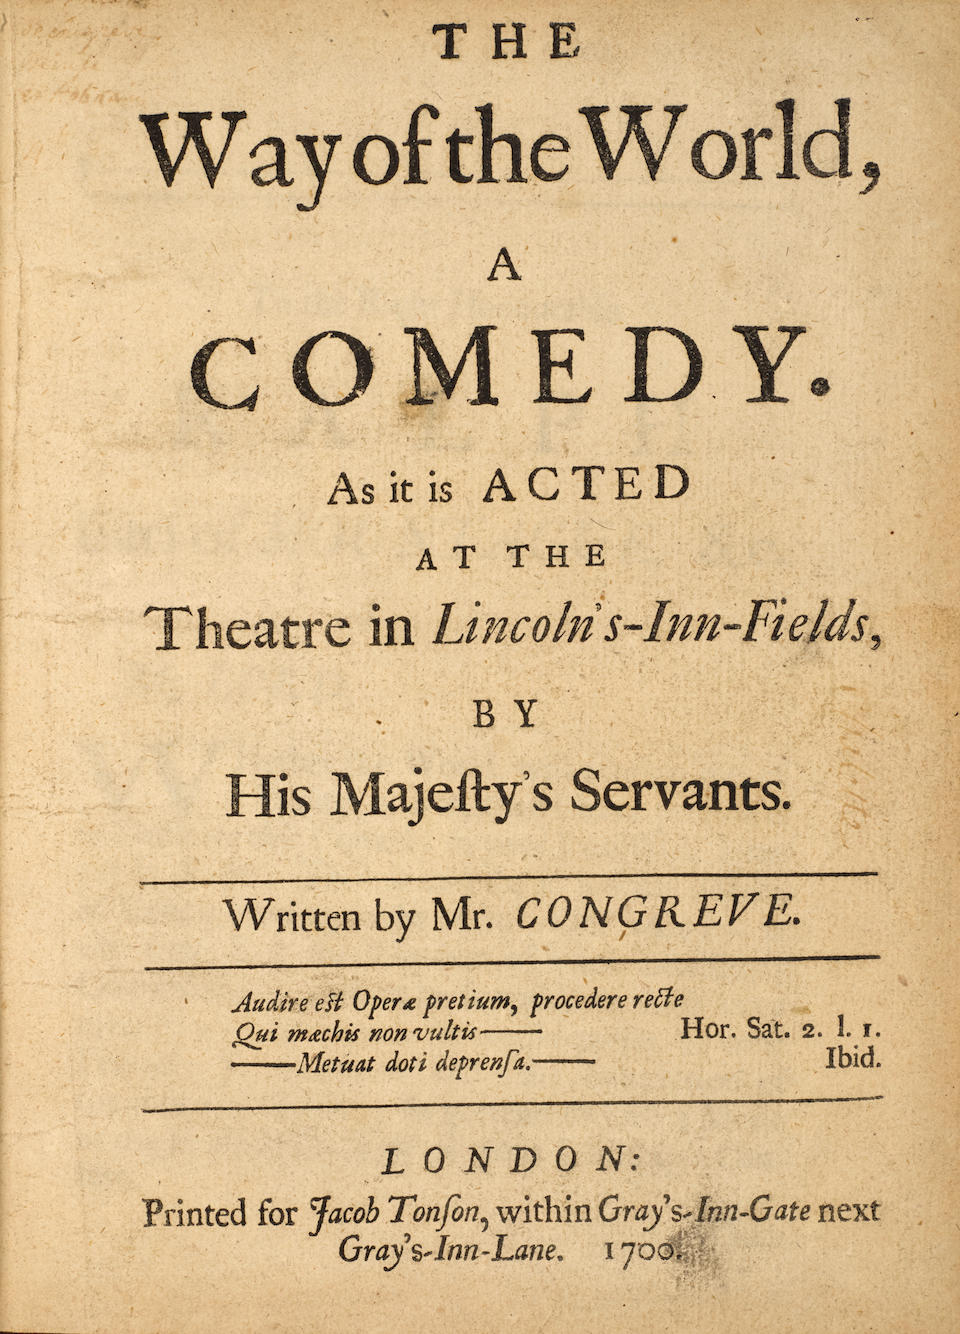 RESTORATION DRAMA. 5 titles: 1. CONGREVE, WILLIAM. 1670-1729. The Way of the World. A Comedy. London: Jacob Tonson, 1700.